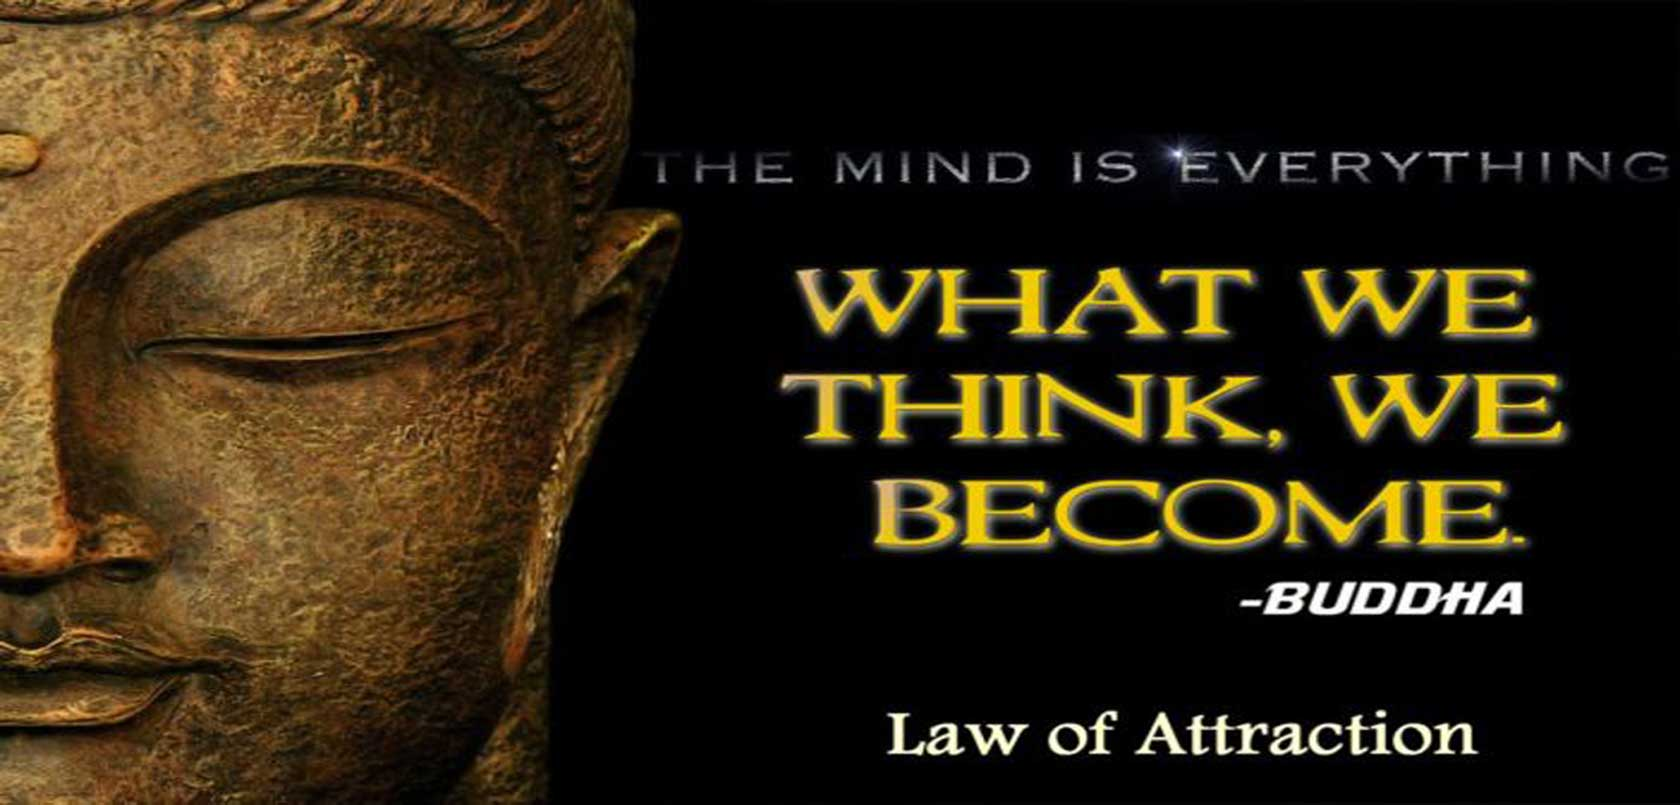 Have you mastered the law of attraction?